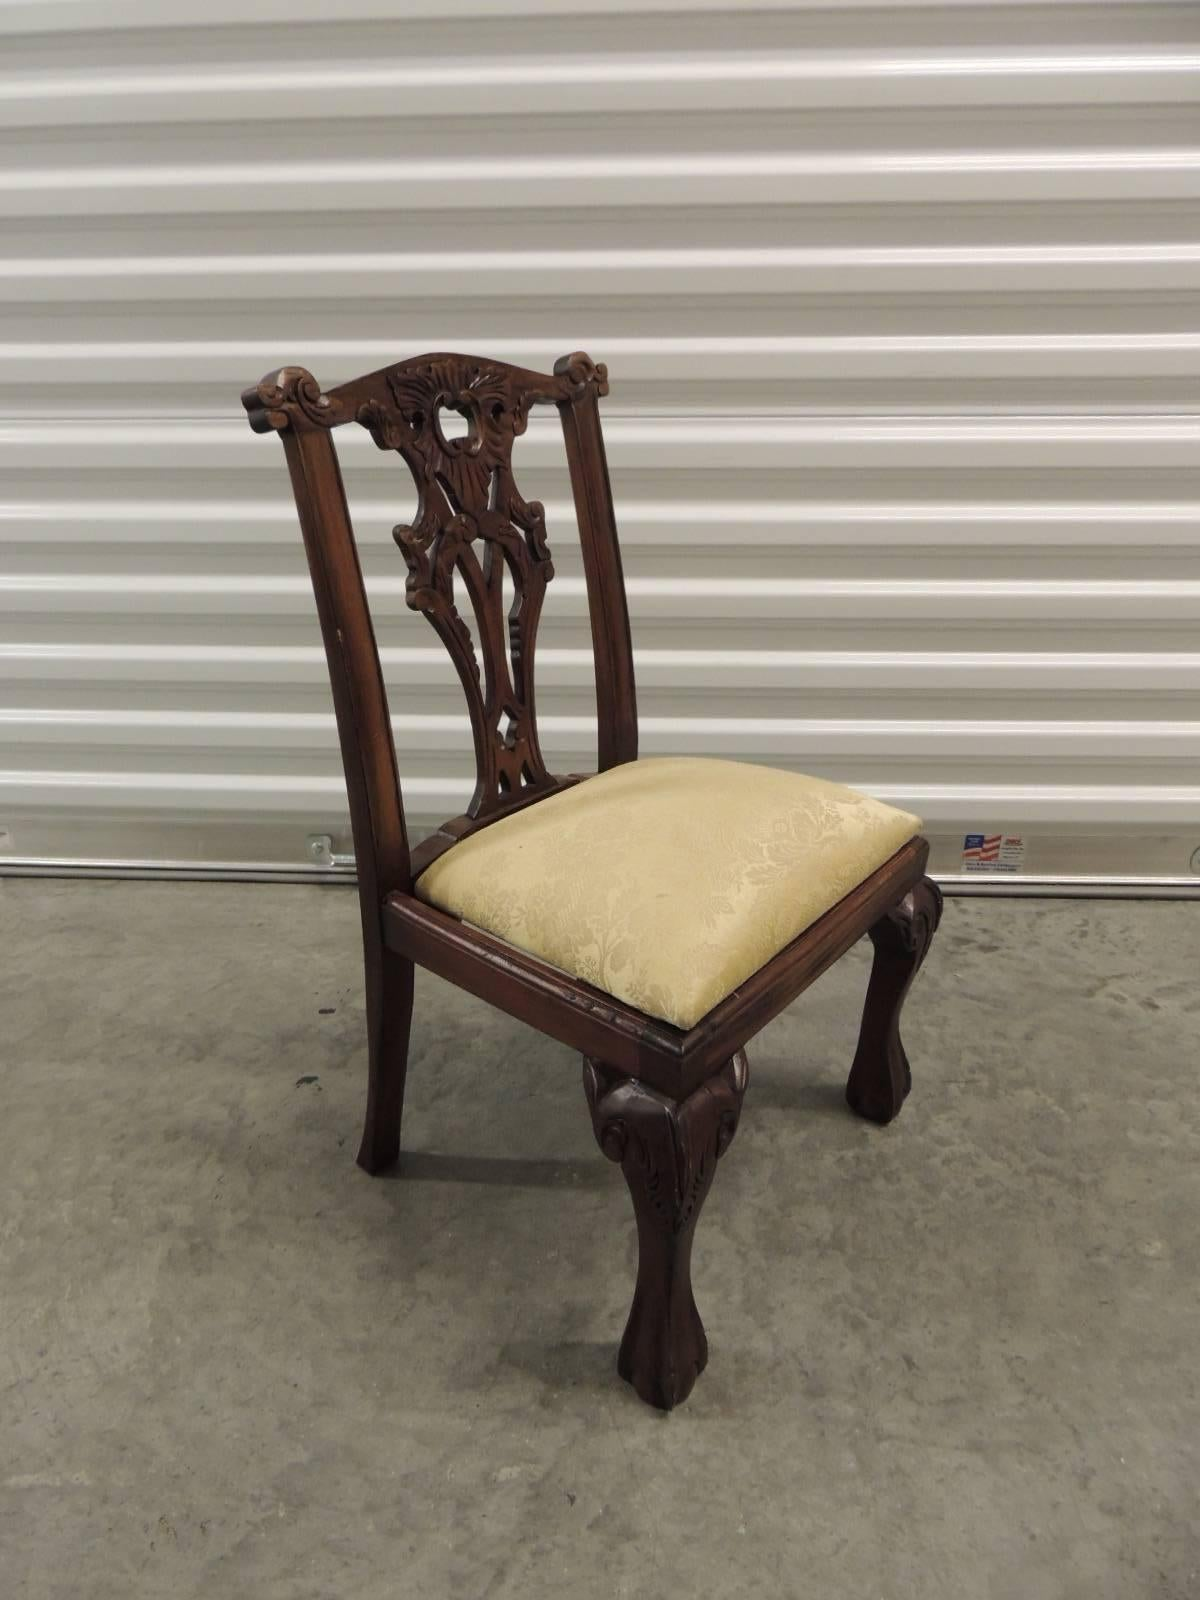 Offered by the Antique Textiles Galleries Vintage Chippendale style carved wood children chair Childrenu0027s chair & CLOSE OUT SALE: Vintage Carved Wood Children Chair For Sale at 1stdibs